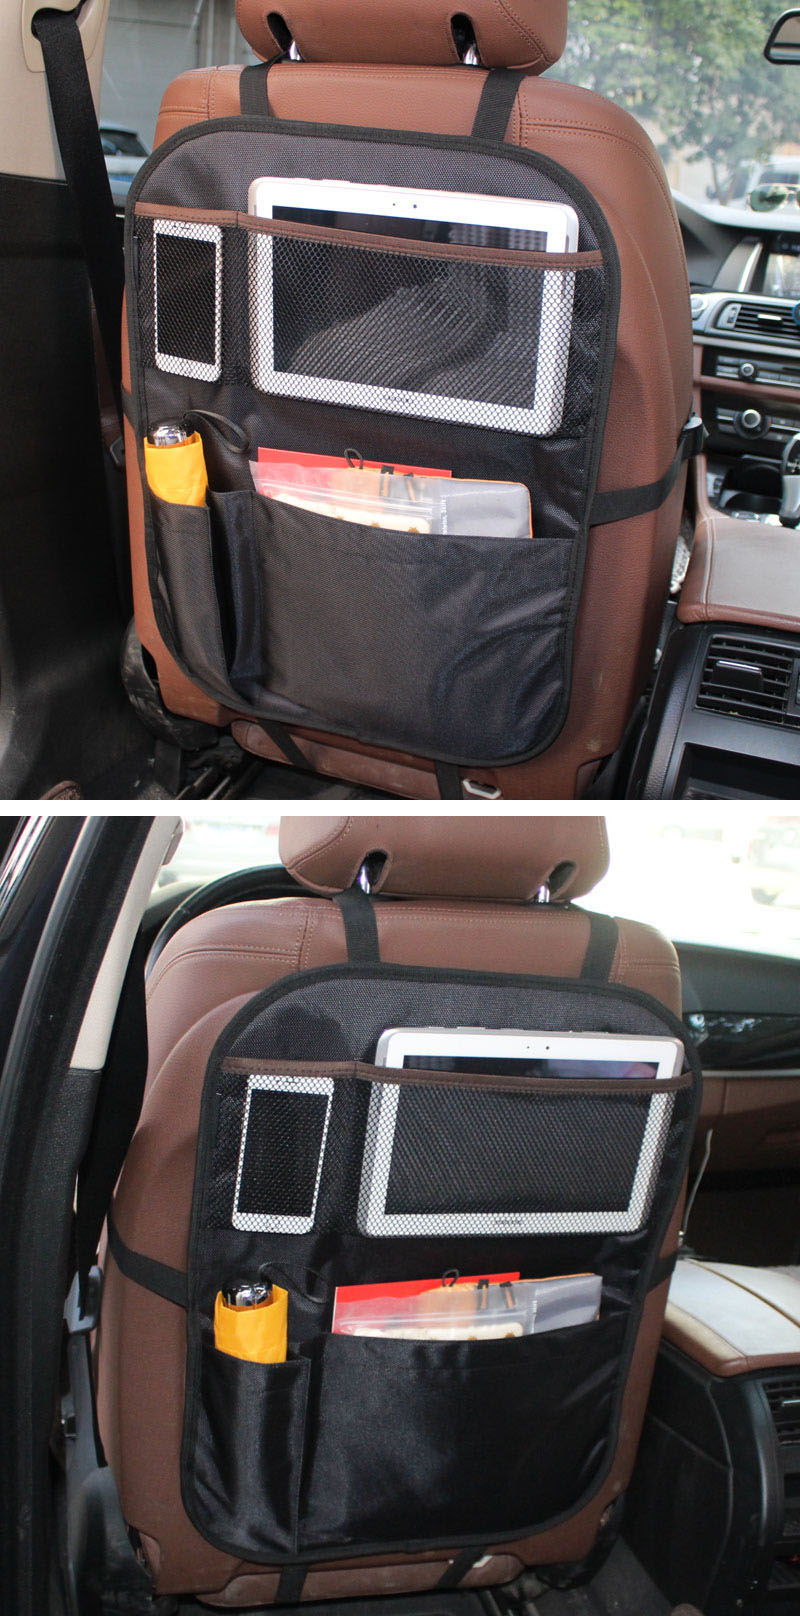 Auto Organizer Tablet Multi Pocket Car Storage Organizer For Kid Auto Backseat Kick Mat Protector Universal Car Back Seat Organizer With Tablet Holder Buy Universal Car